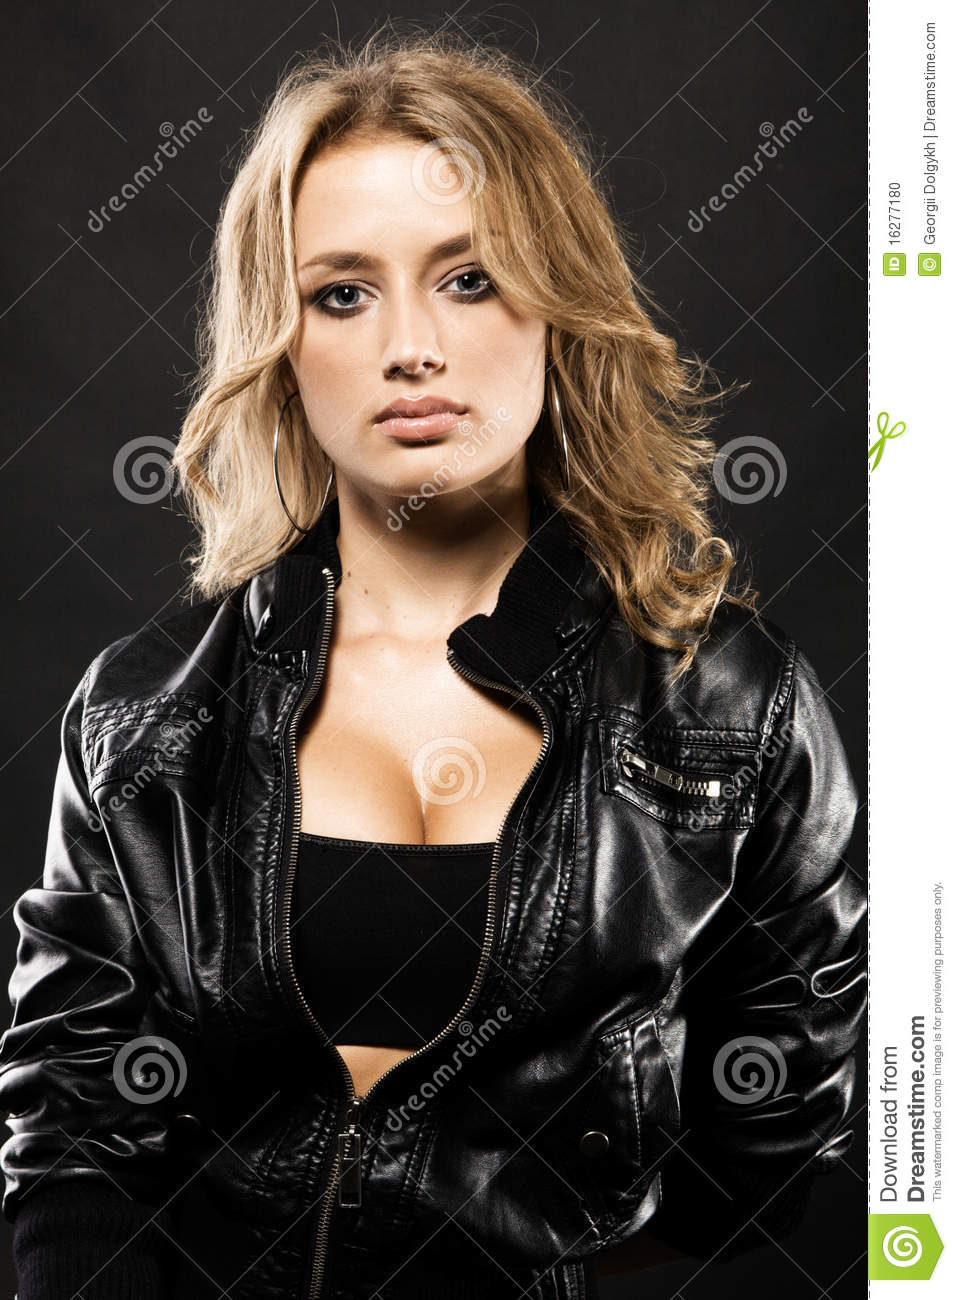 Sexy women in leather pics